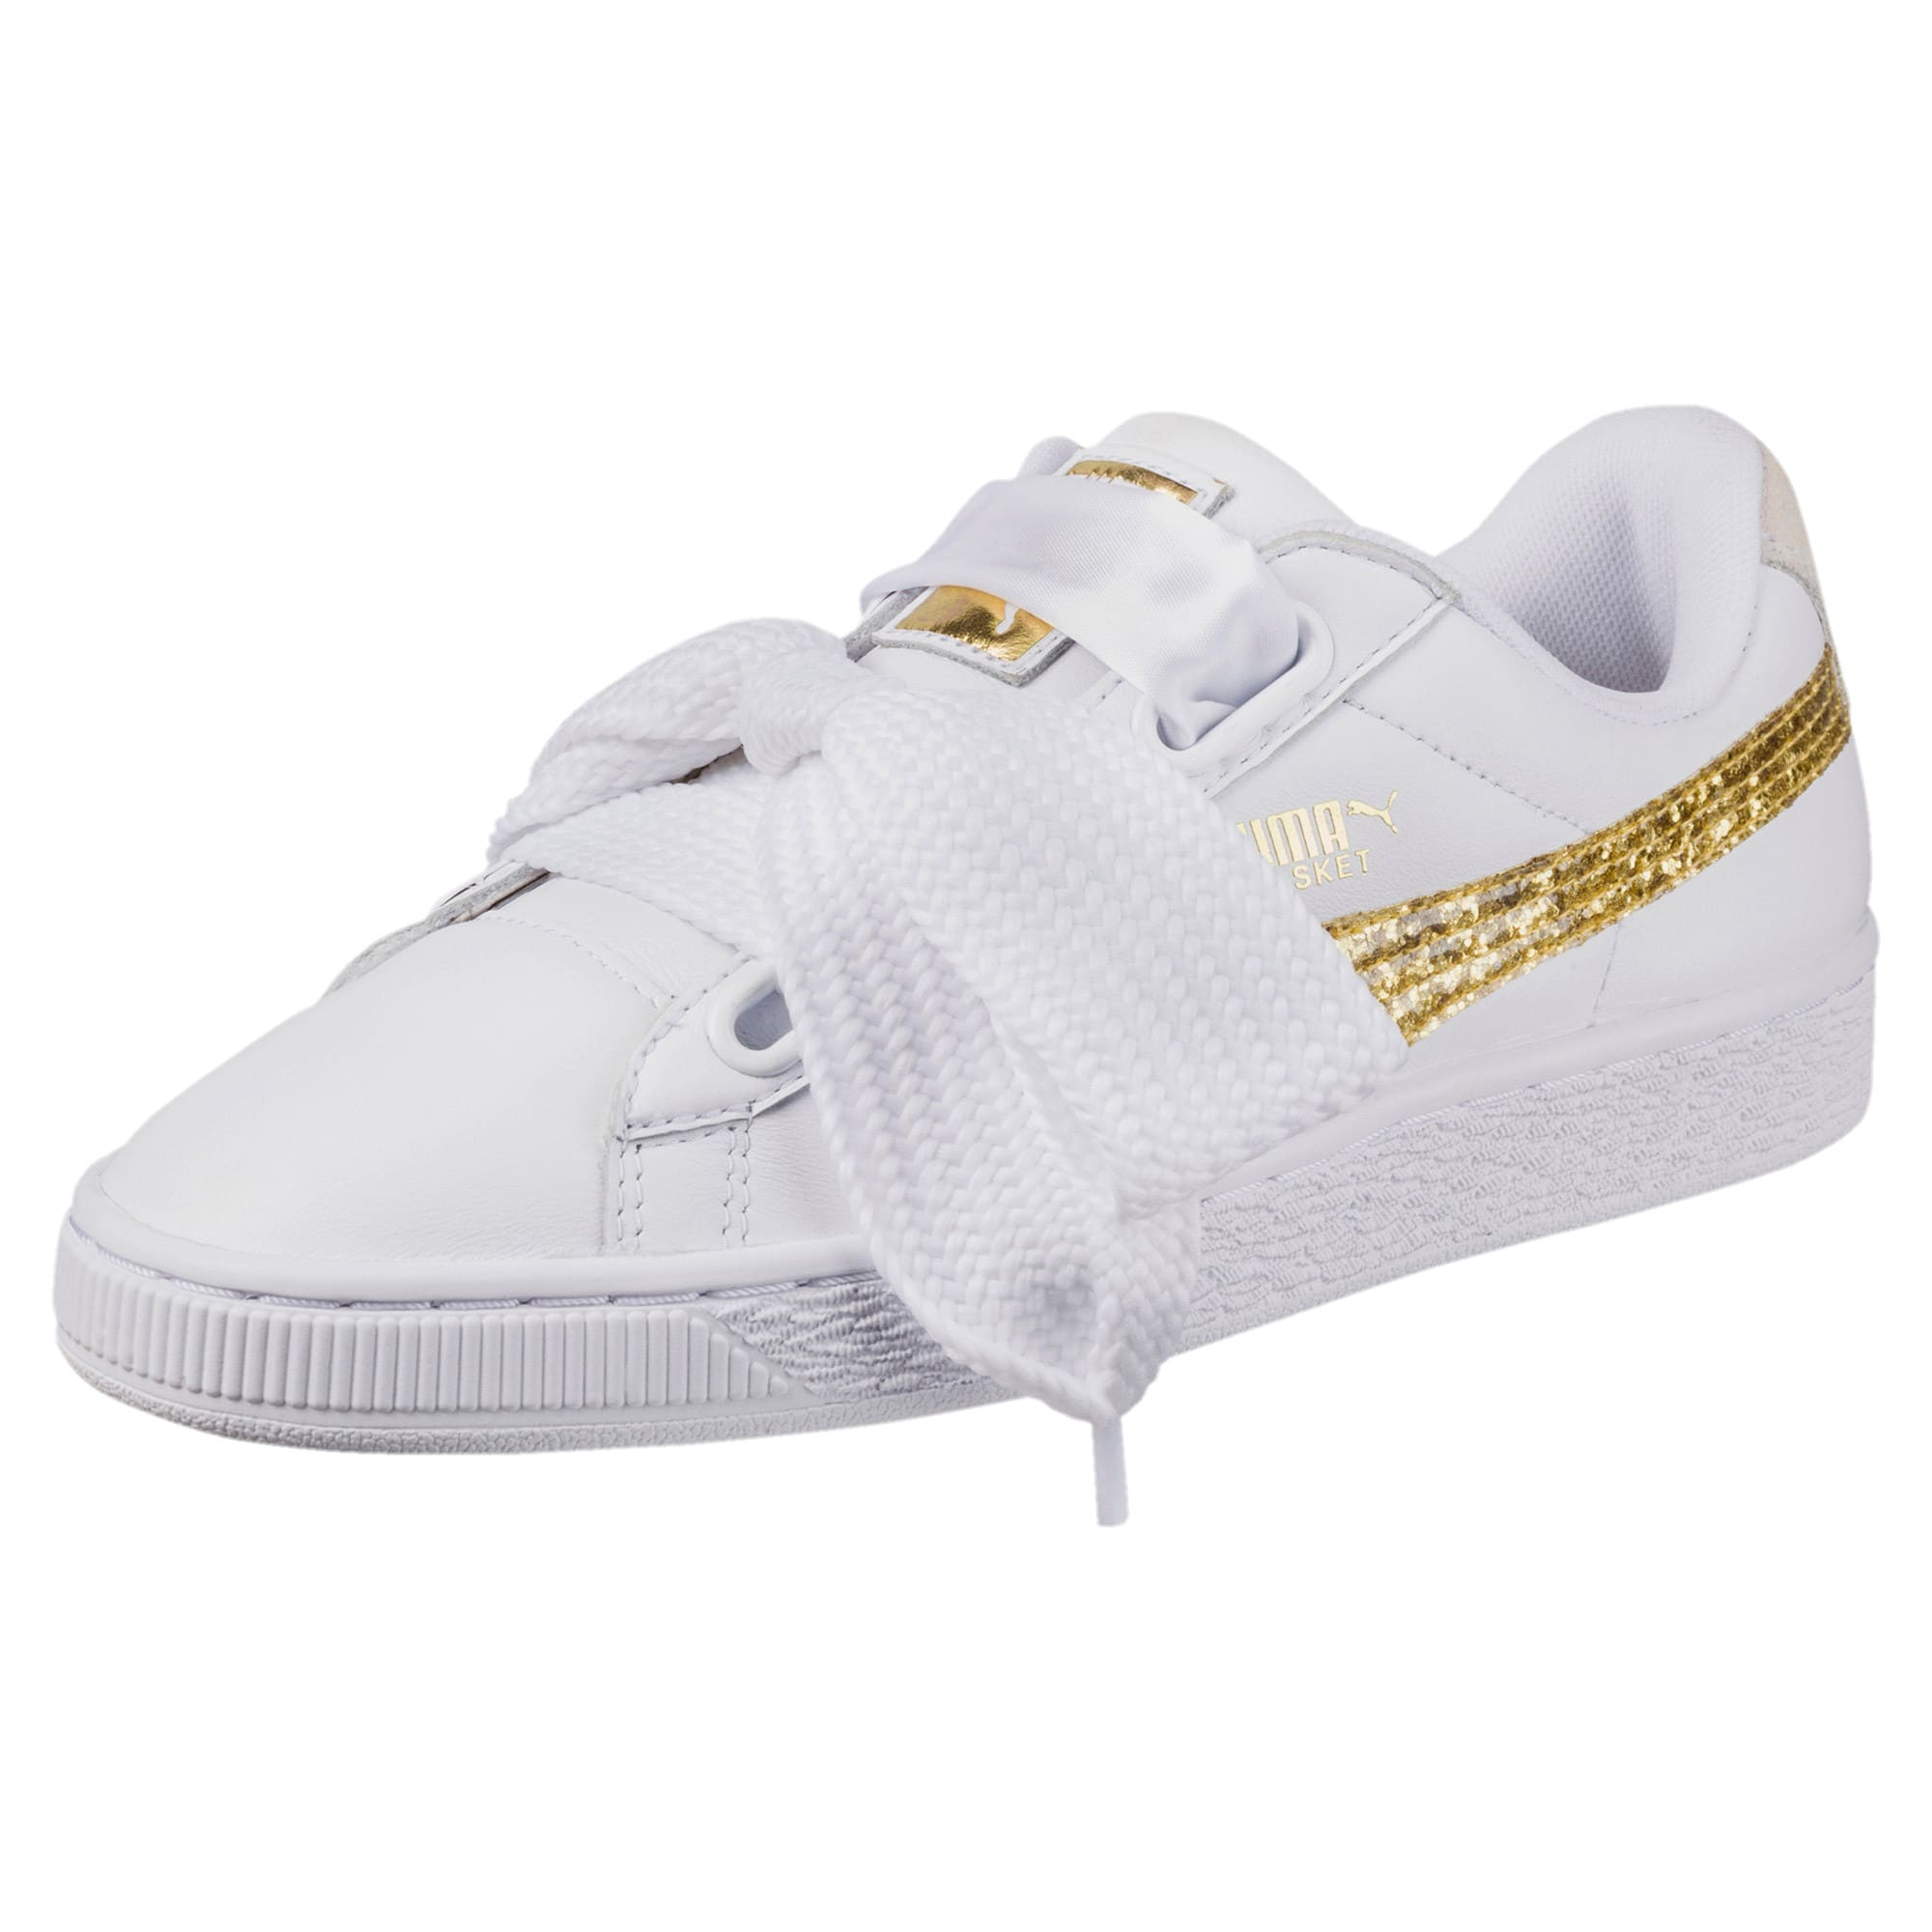 Thumbnail 1 of Basket Heart Glitter Women's Trainers, Puma White-Gold, medium-IND